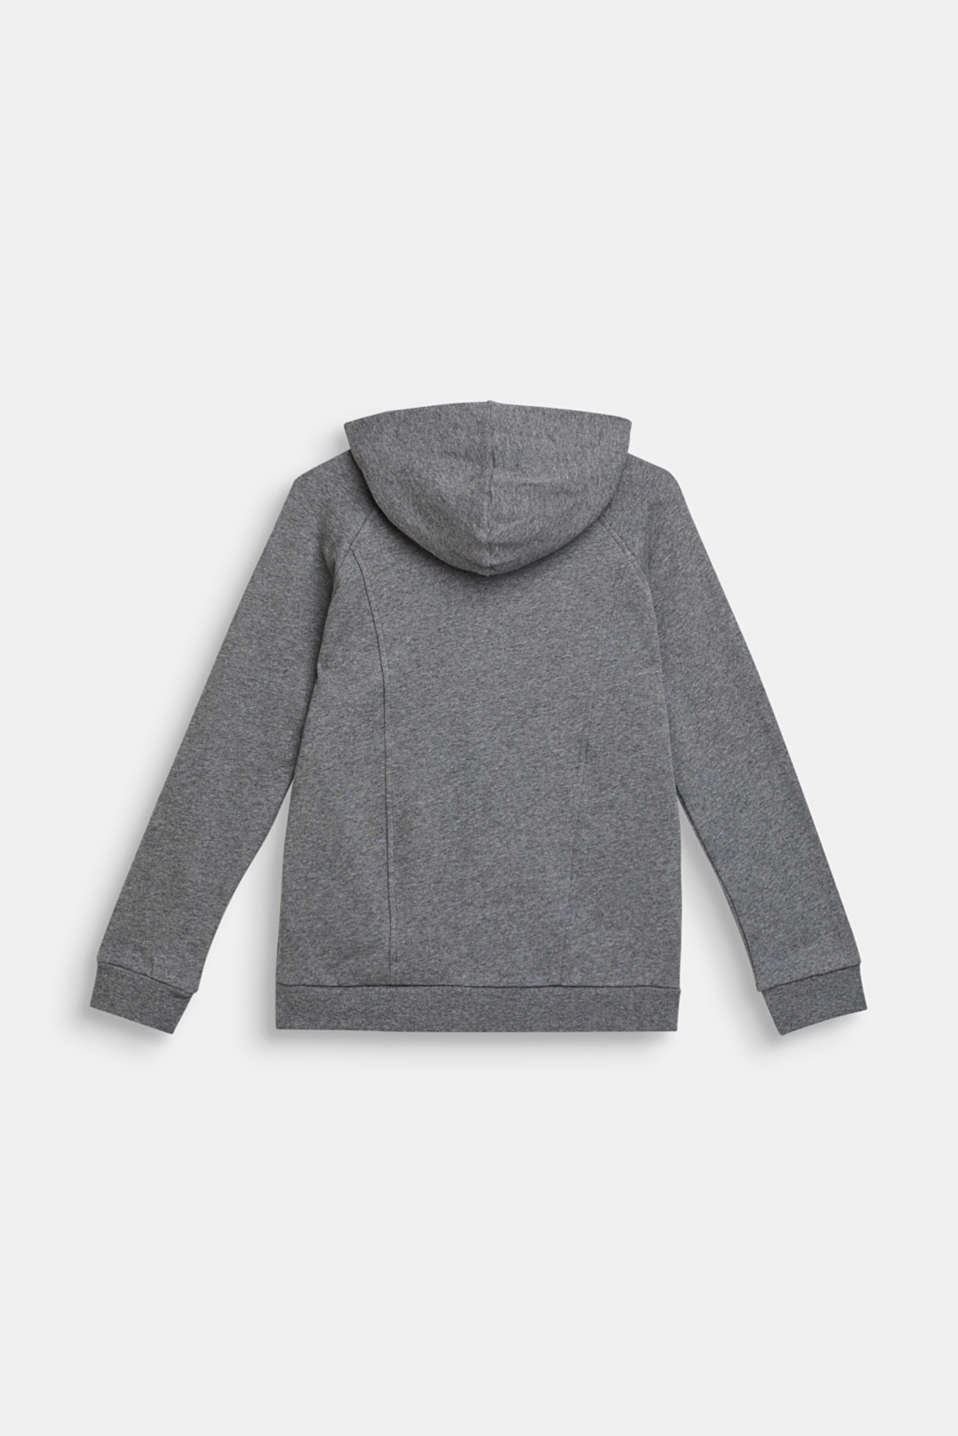 Sweatshirt fabric cardigan with shiny details, 100% cotton, LCDARK HEATHER G, detail image number 1